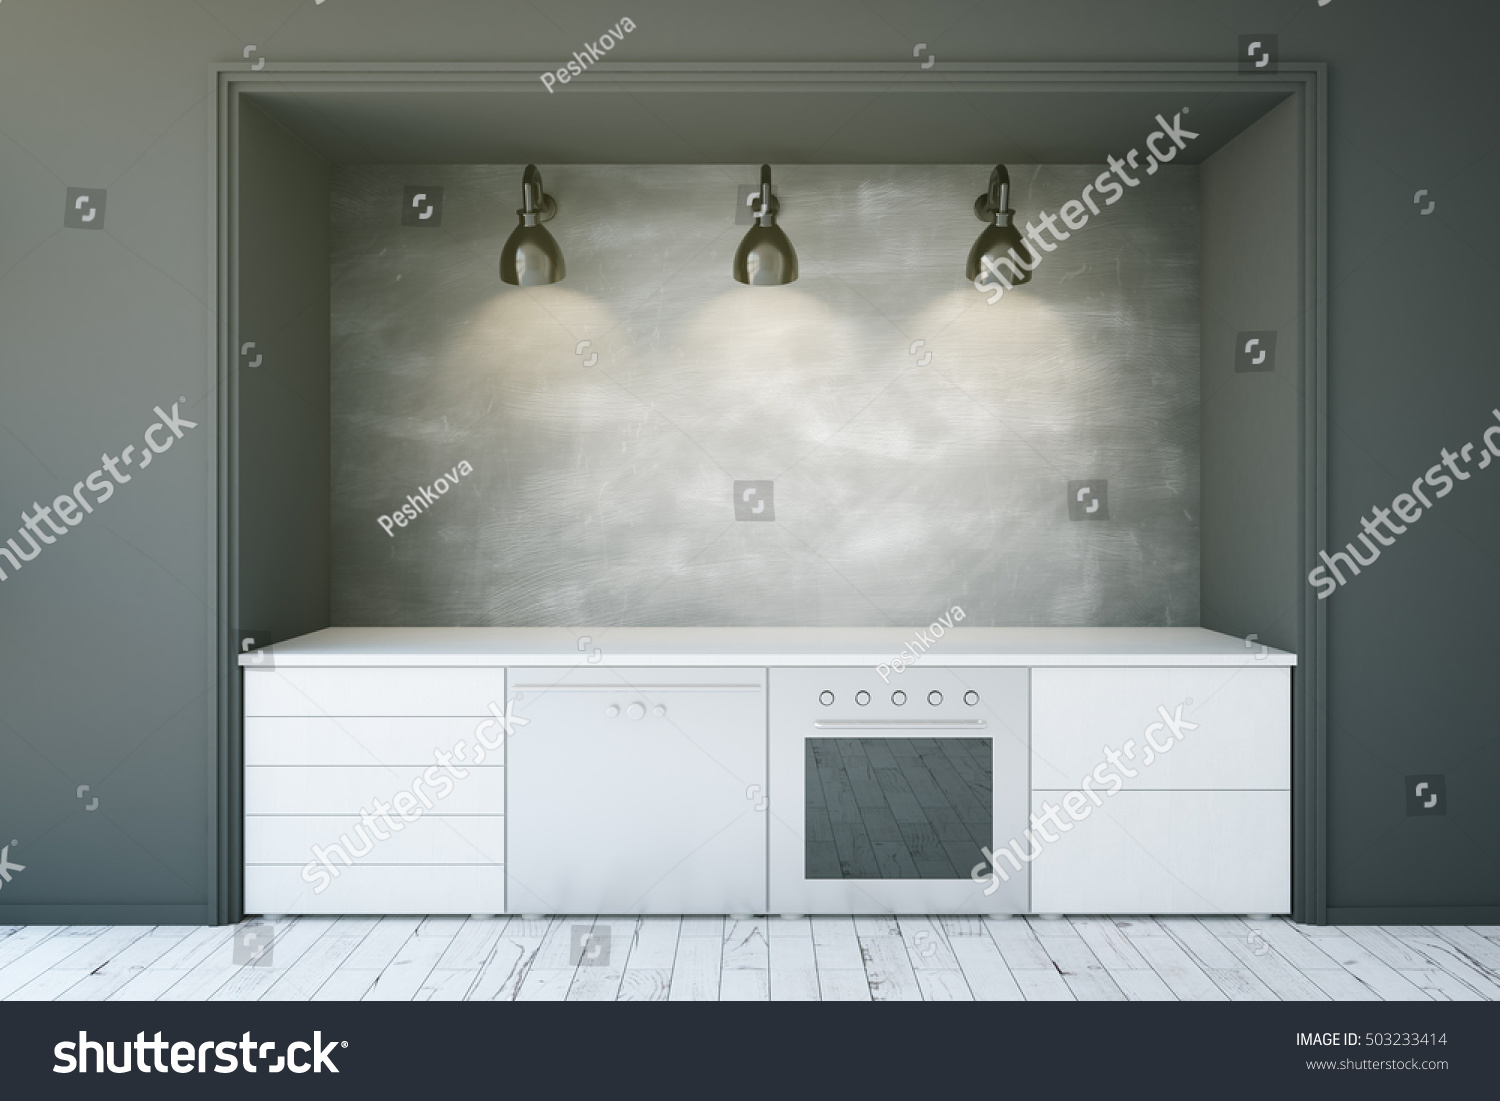 Perfect Chalkboard Kitchen Photos - Best Kitchen Ideas - i-contain.com